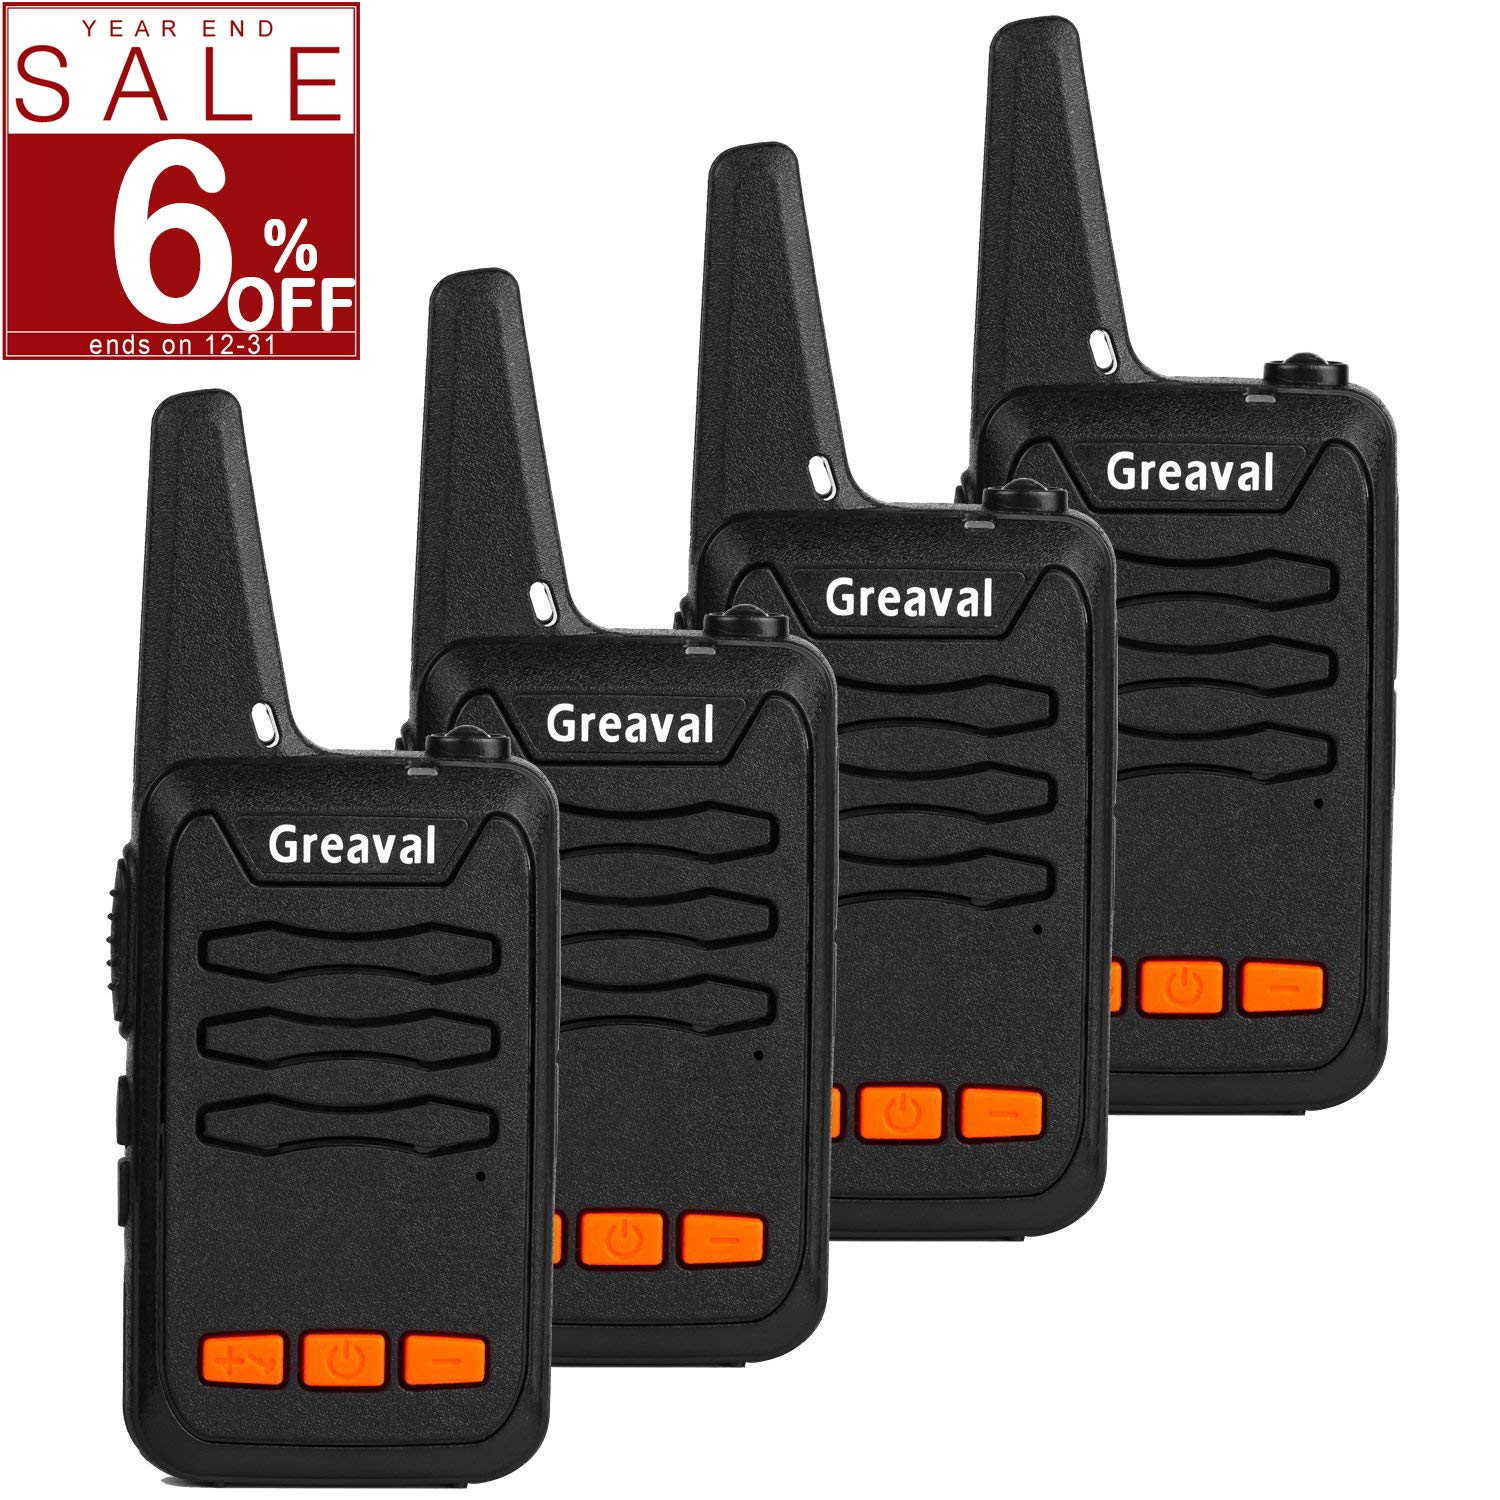 3e926452271 Greaval Walkie Talkie Long Range with Charger 16-Channel 2 Way Radio UHF 400 ~